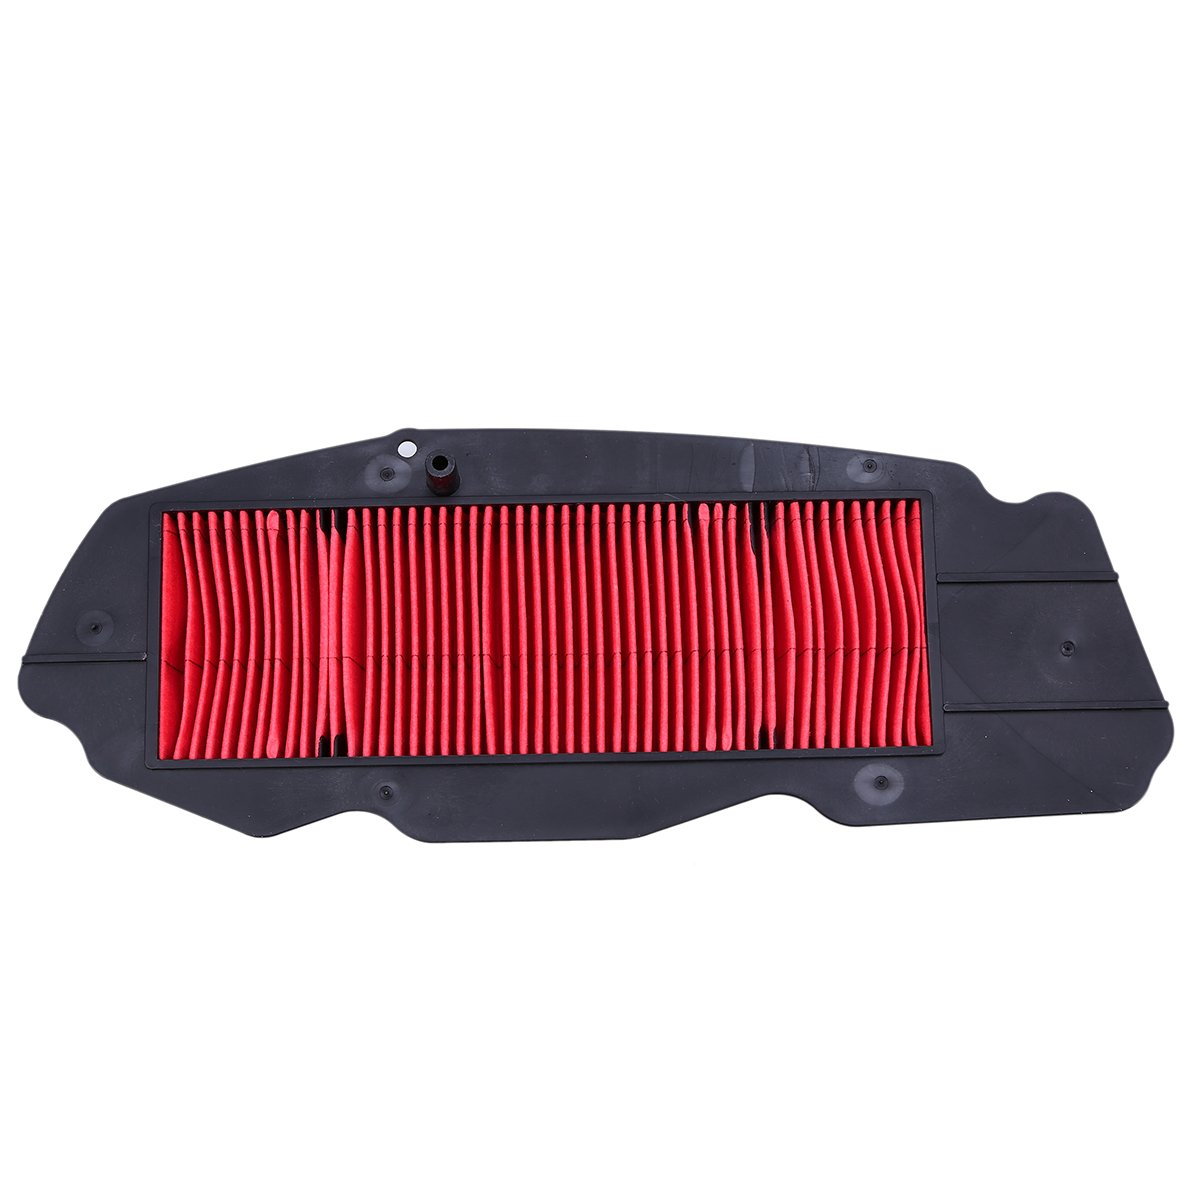 POSSBAY Motorcycle Air Filter Replacement for Honda FJS400 Silverwing 2006-2009